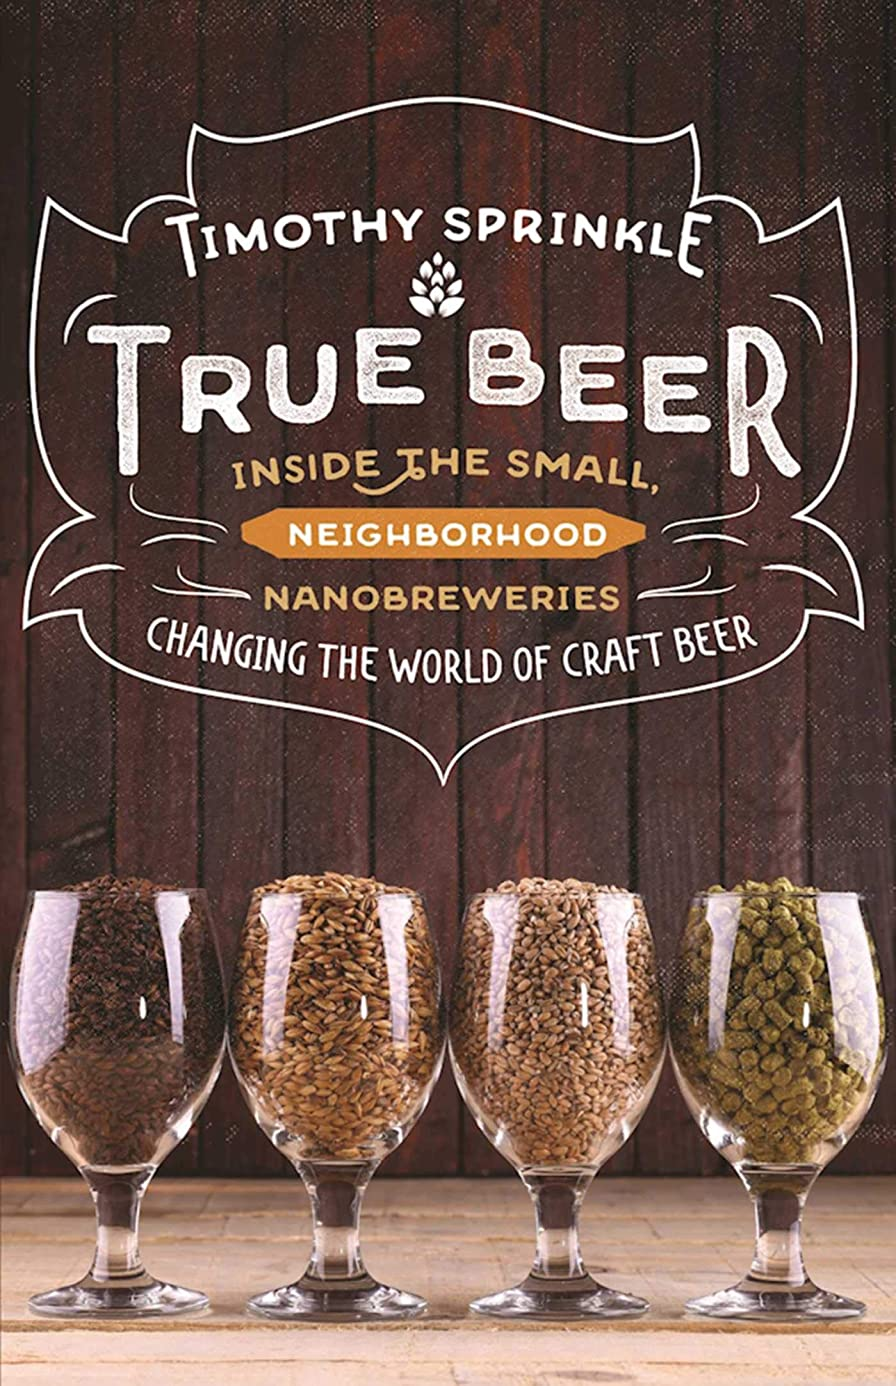 True Beer: Inside the Small, Neighborhood Nanobreweries Changing the World of Craft Beer